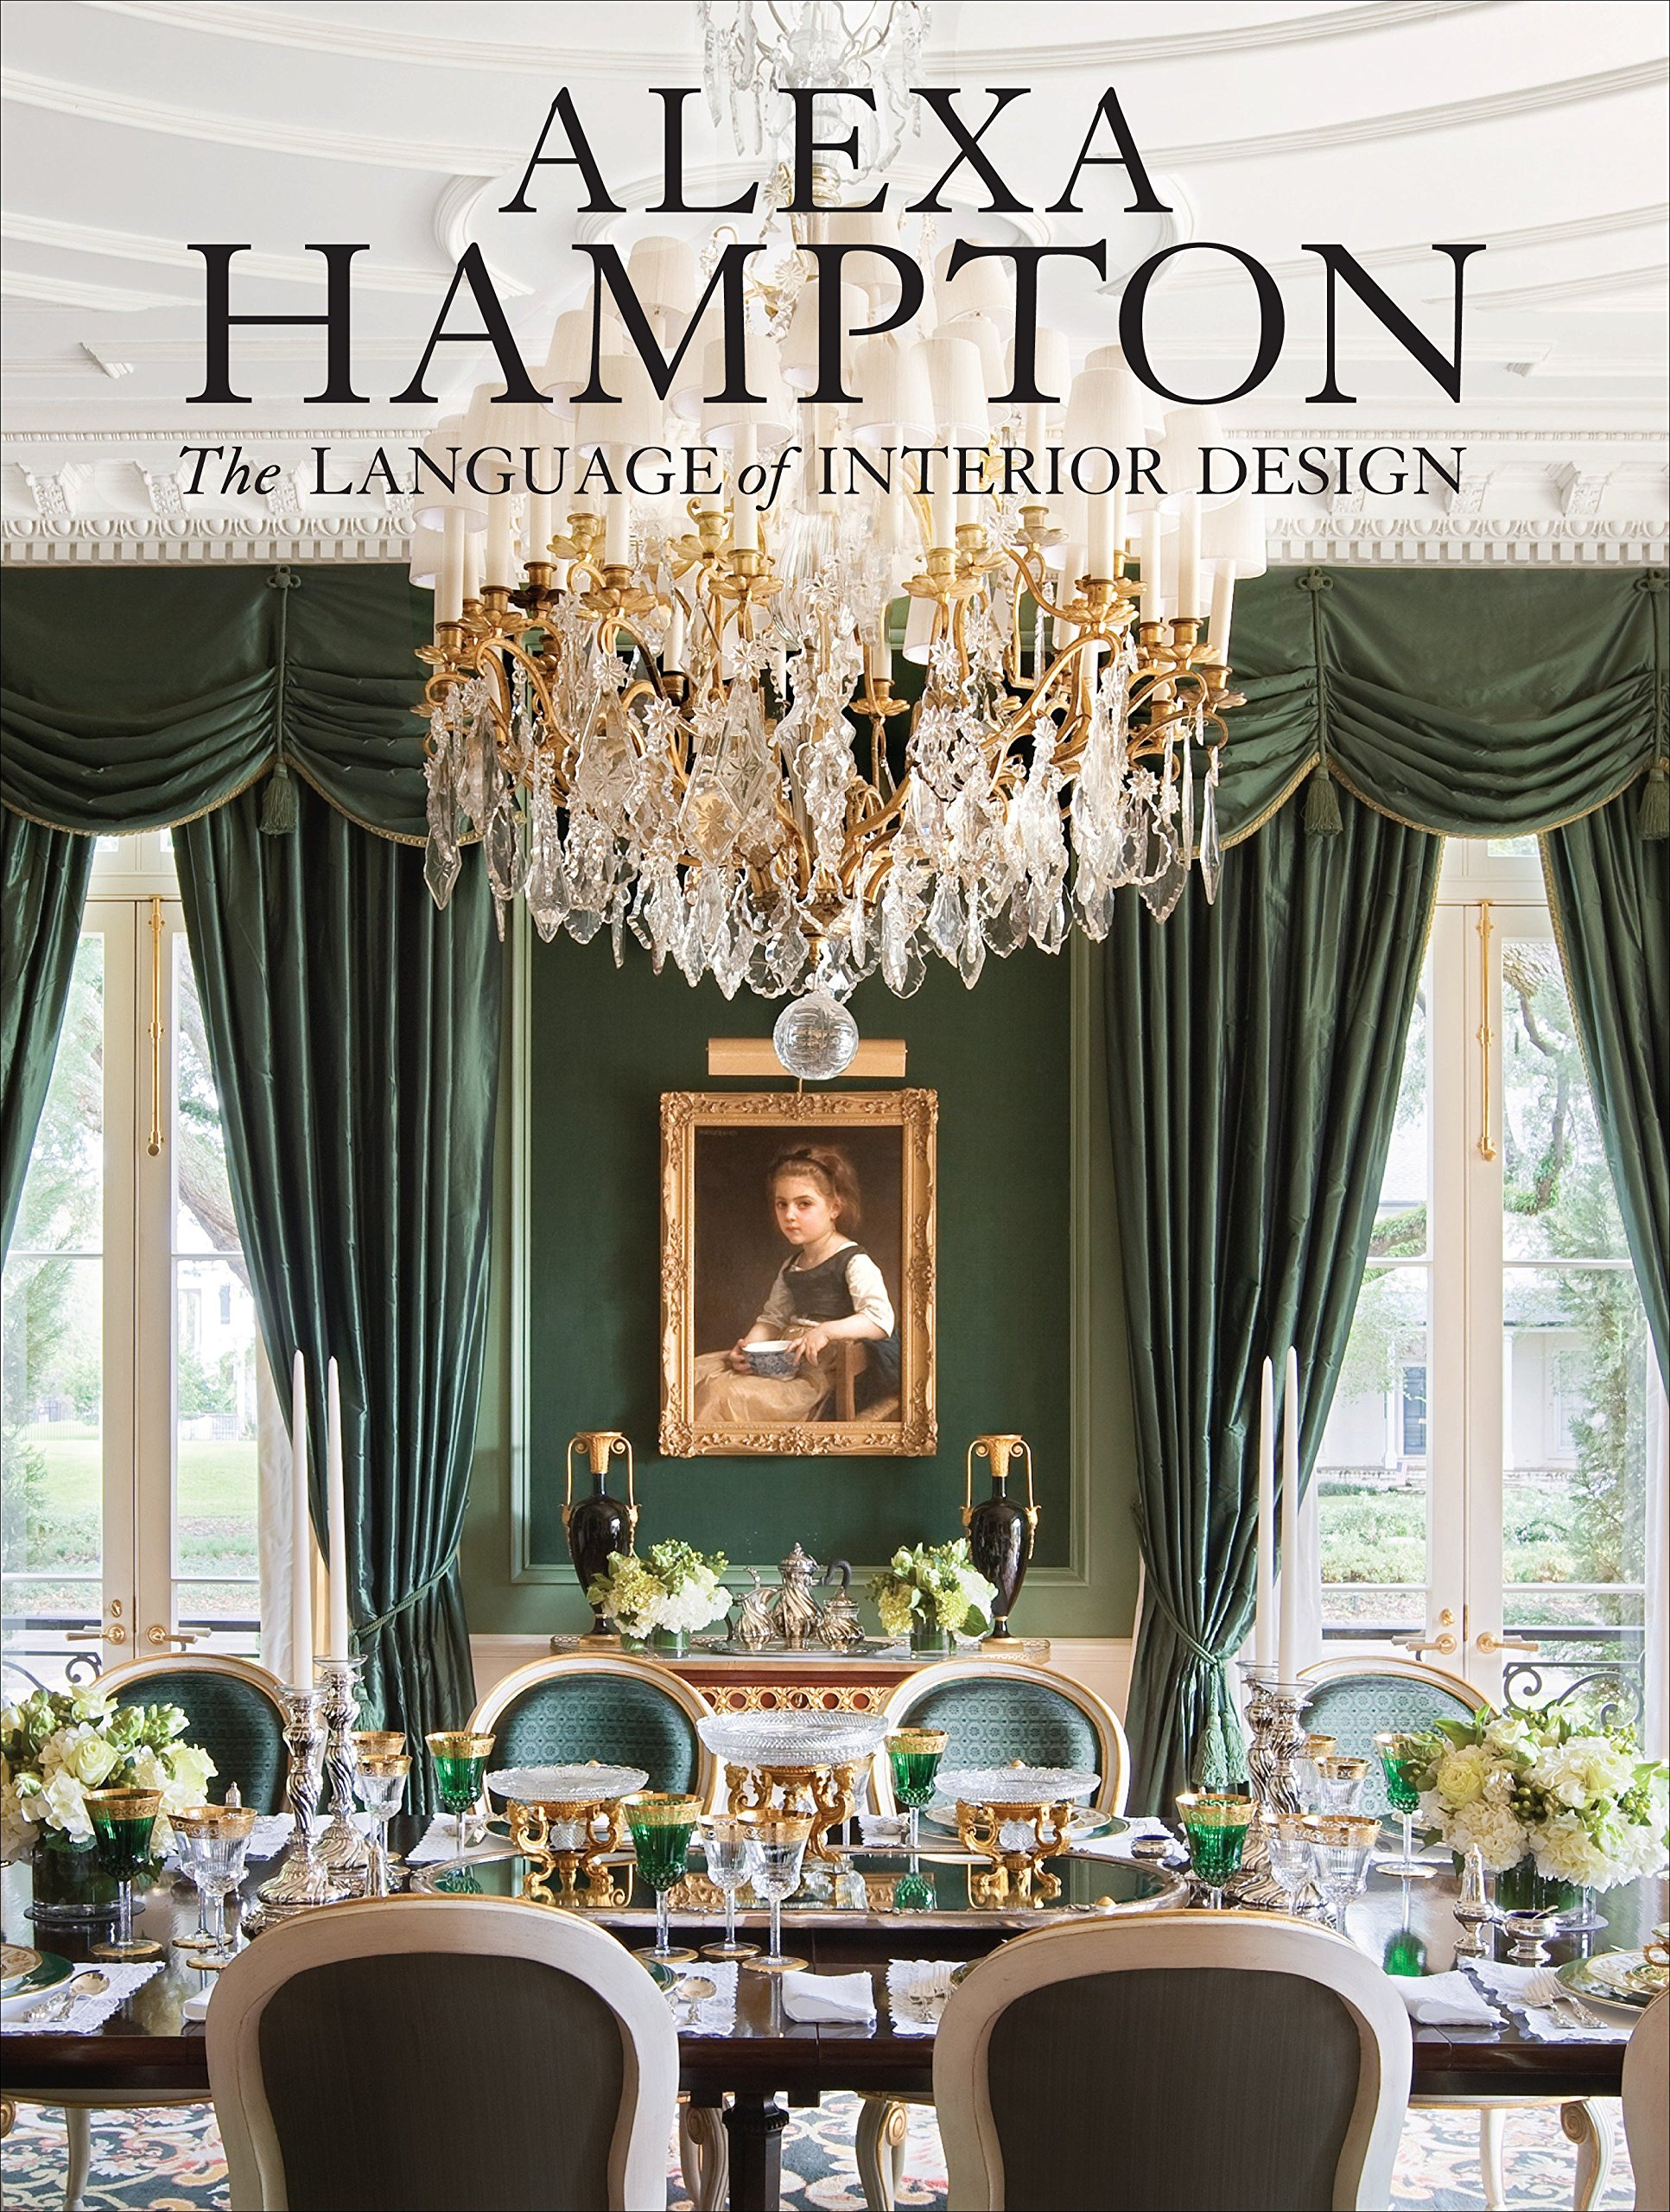 Alexa Hampton: The Language of Interior Design